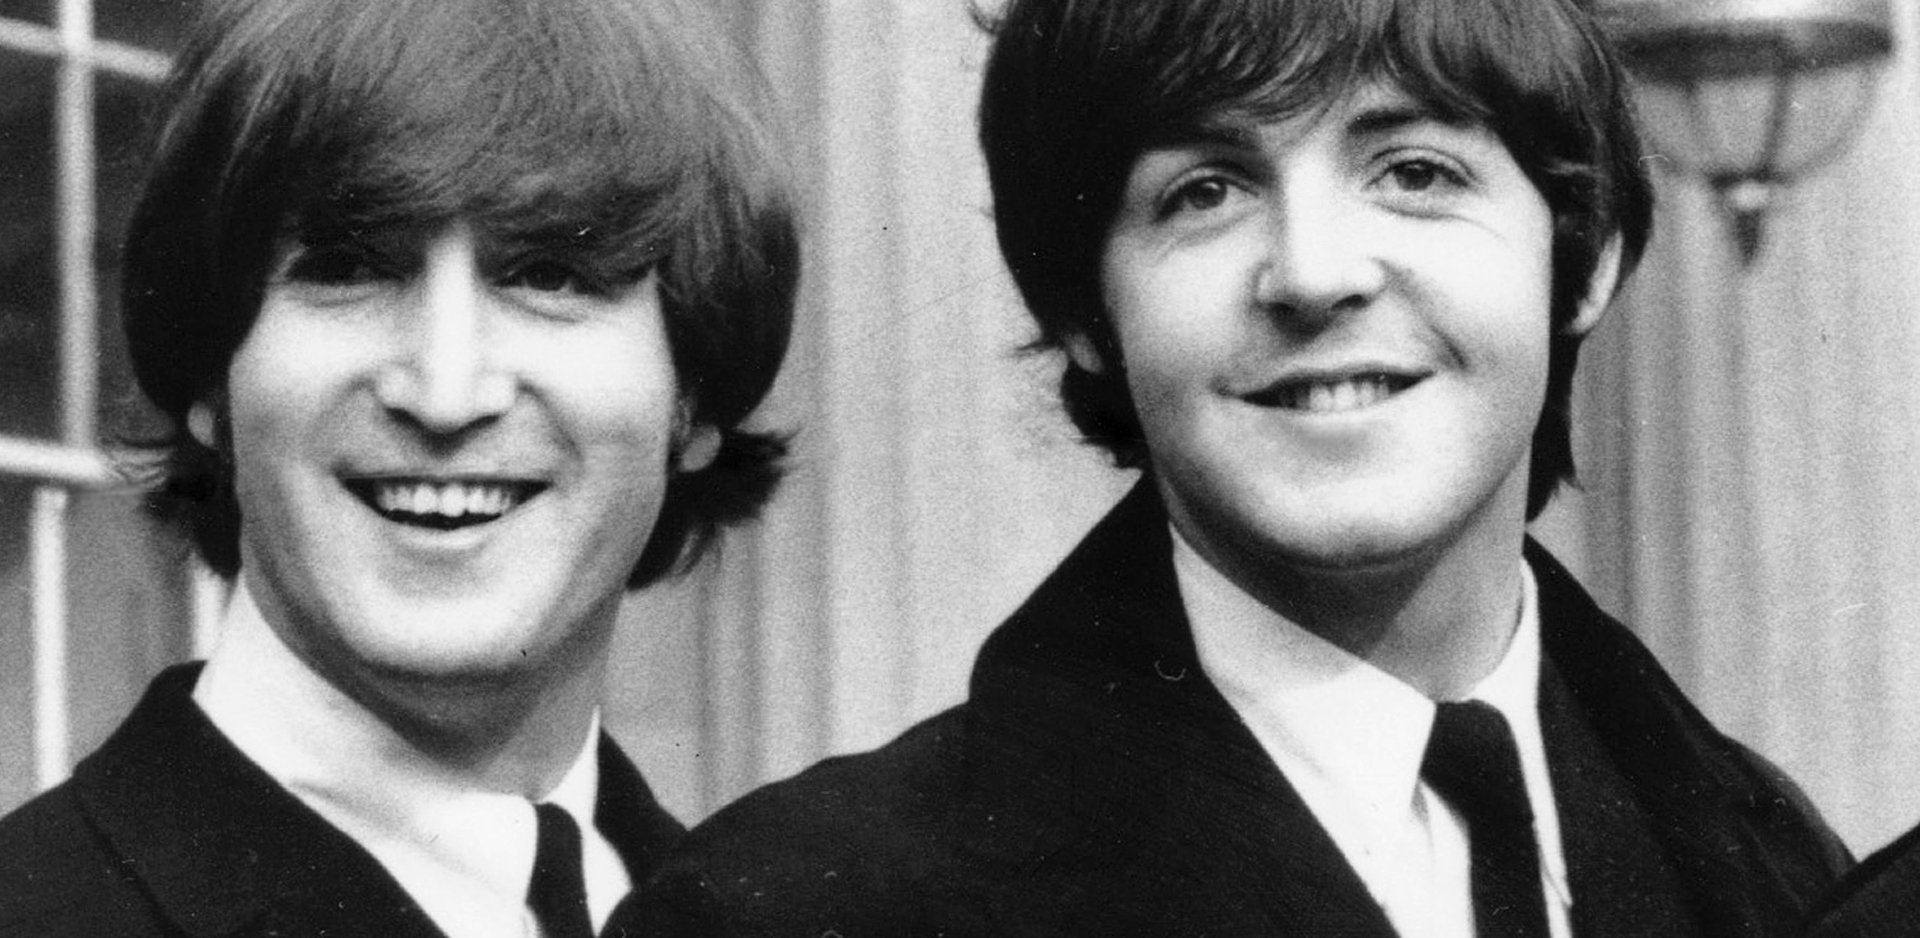 Despite The Mythology Around Idea Of Lone Genius Famous Partnership John Lennon And Paul McCartney Demonstrates Brilliance Creative